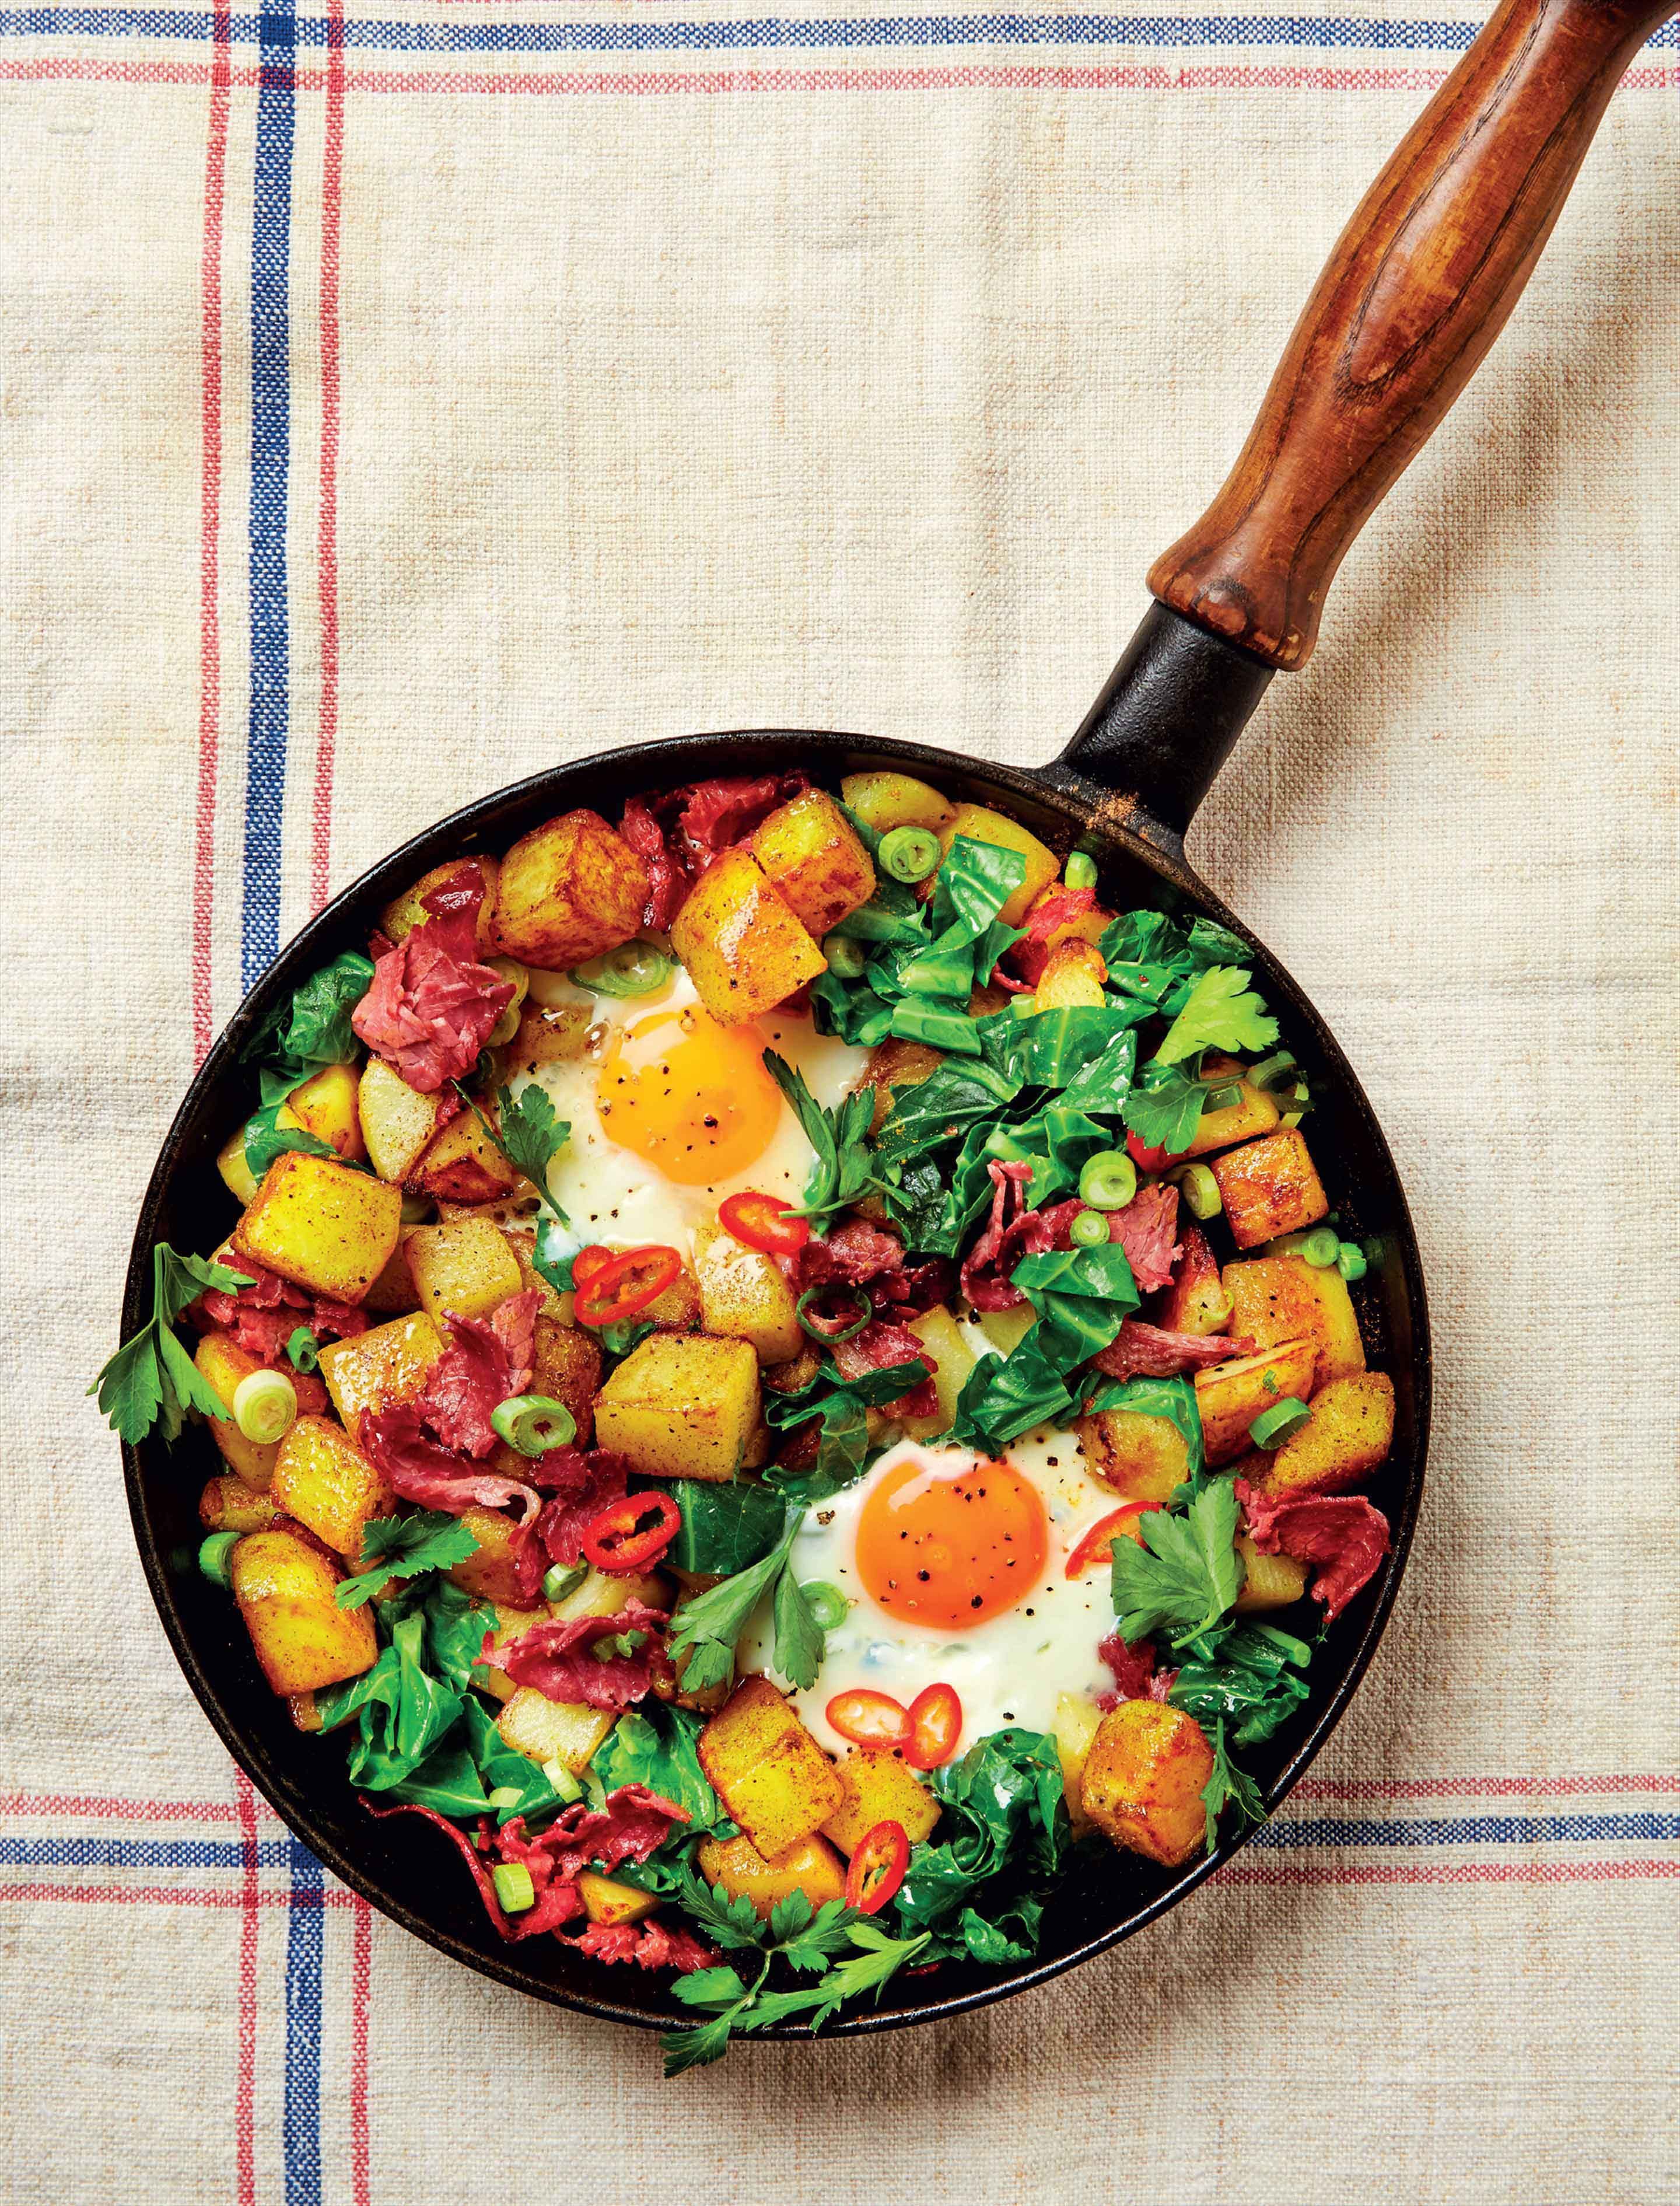 Spiced hash